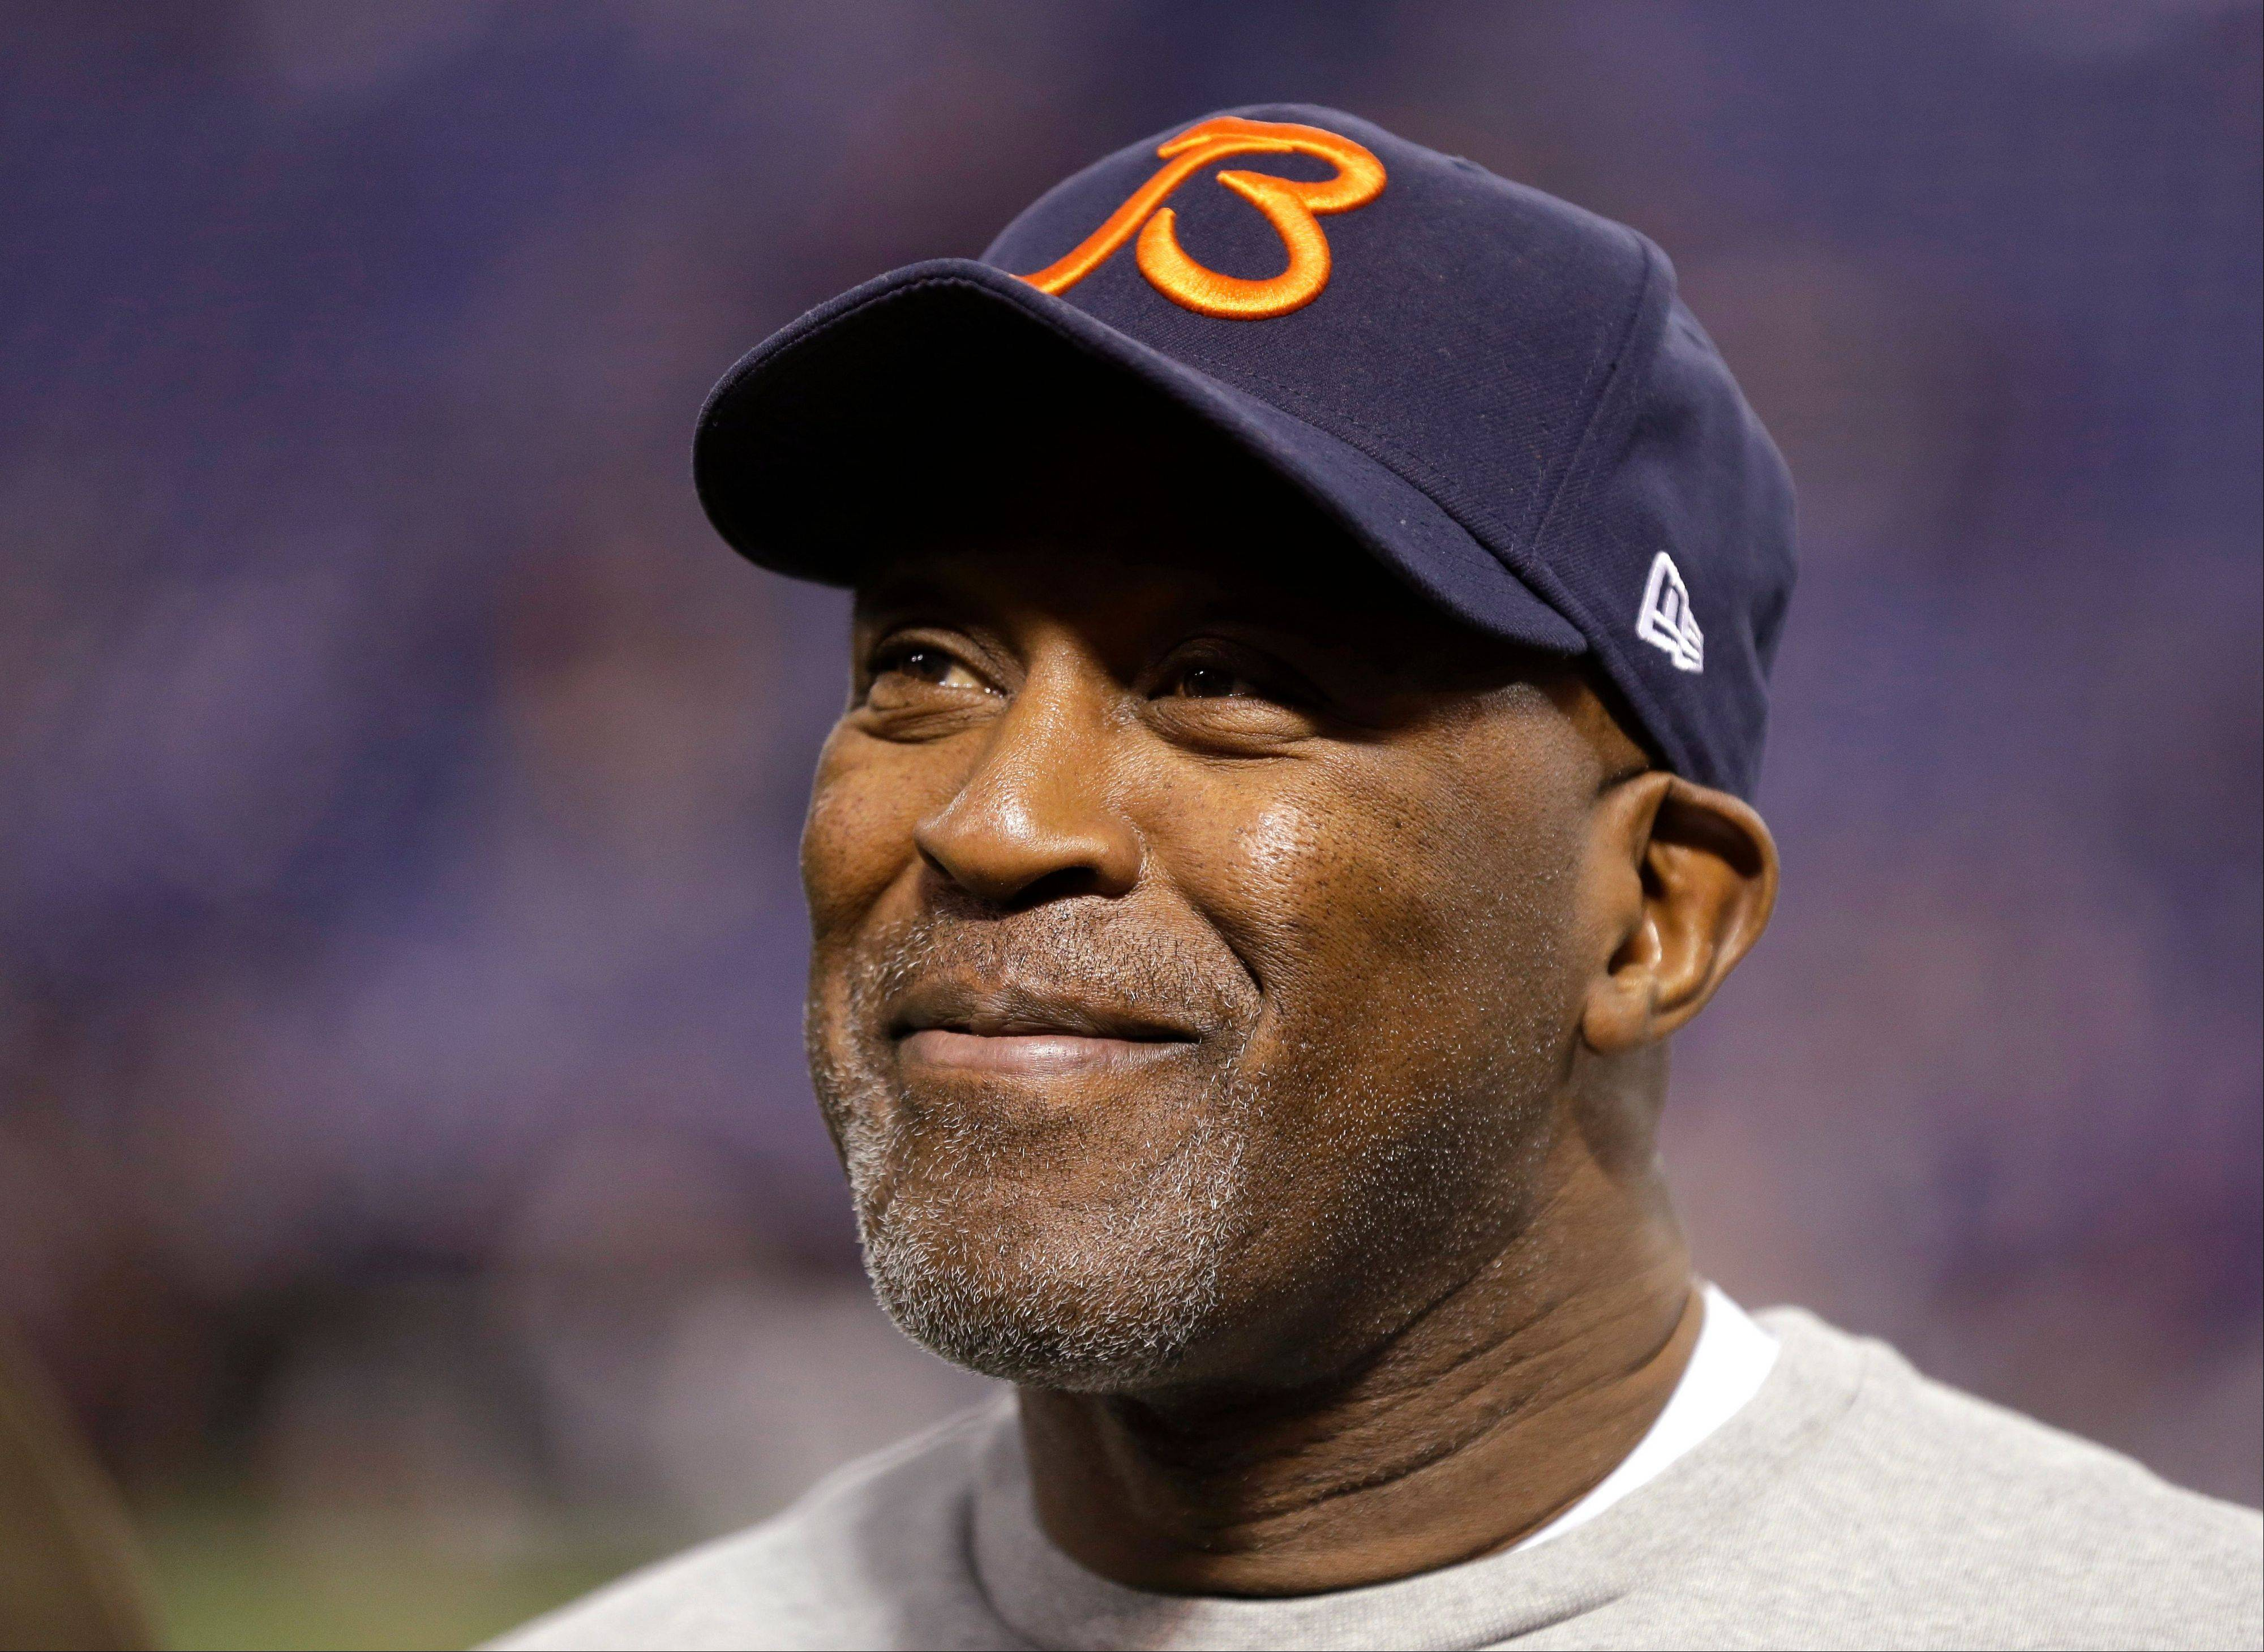 In this Dec. 9, 2012, photo, Chicago Bears coach Lovie Smith smiles before the Bears' NFL football game against the Minnesota Vikings in Minneapolis. A person familiar with the negotiations says former Bears coach Smith has reached an agreement to coach the Tampa Bay Buccaneers. Speaking to The Associated Press on Wednesday night, Jan. 1, 2014, on the condition of anonymity because an official announcement hasn't been made, the person also says former Minnesota Vikings coach Leslie Frazier will be the Buccaneers' defensive coordinator.